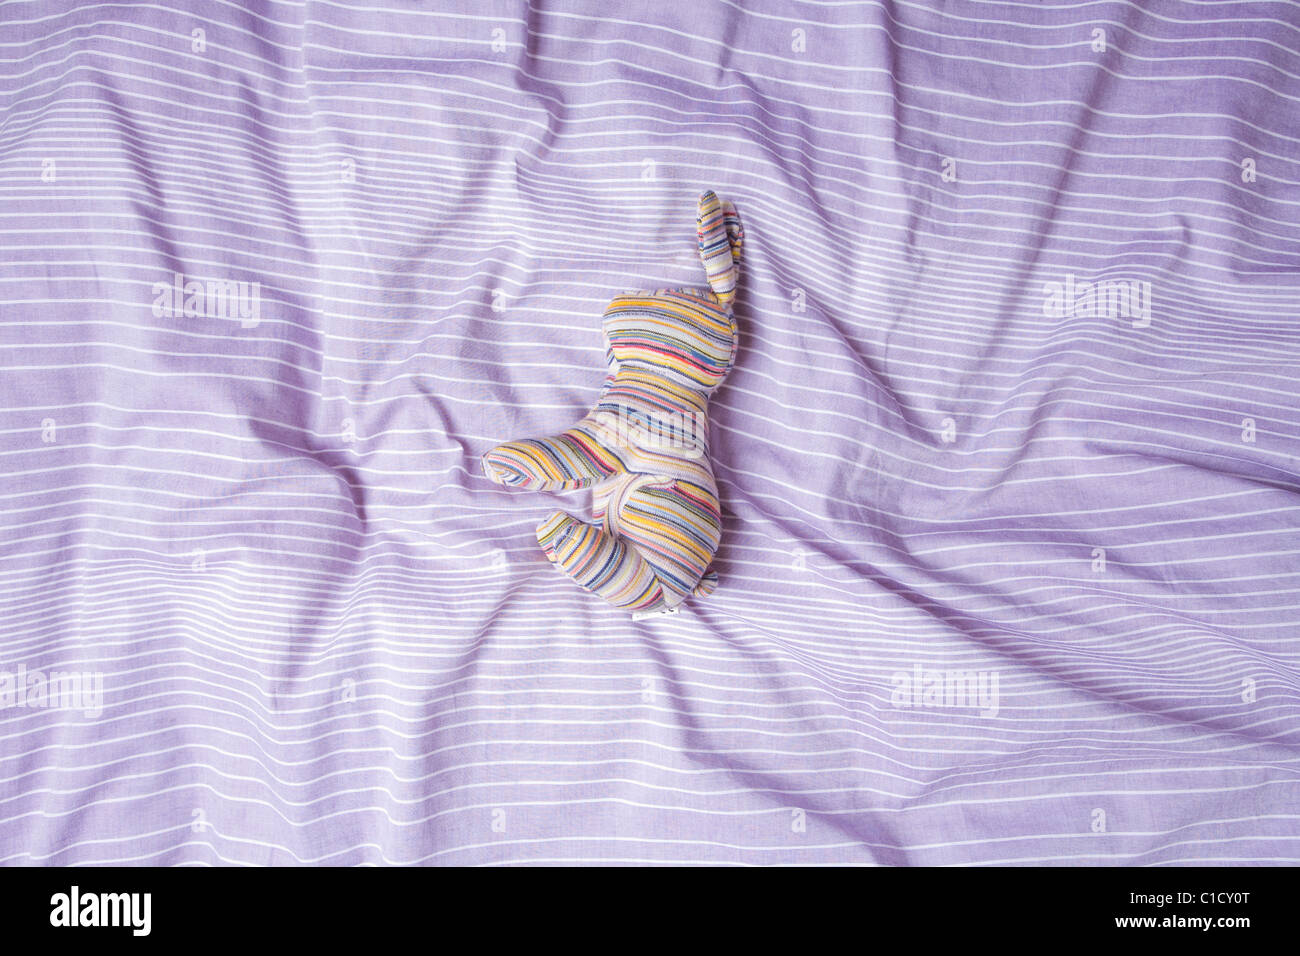 Purple duvet With Toy - Stock Image